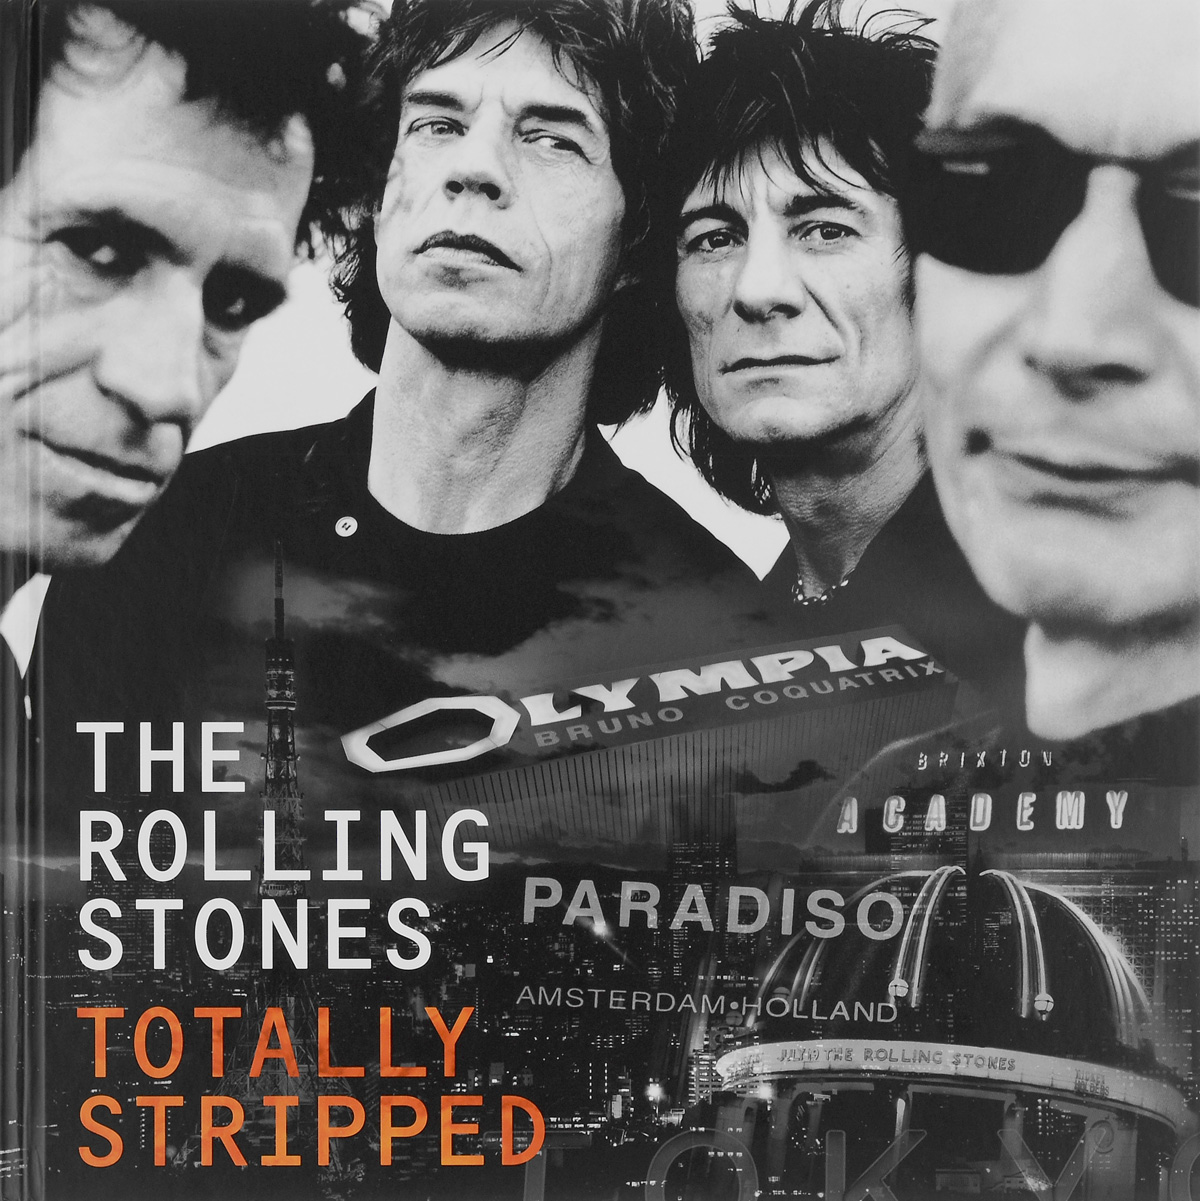 The Rolling Stones The Rolling Stones. The Totally Stripped. Deluxe Edition (CD + 4 DVD) yes yes in the present live from lyon 2 cd dvd